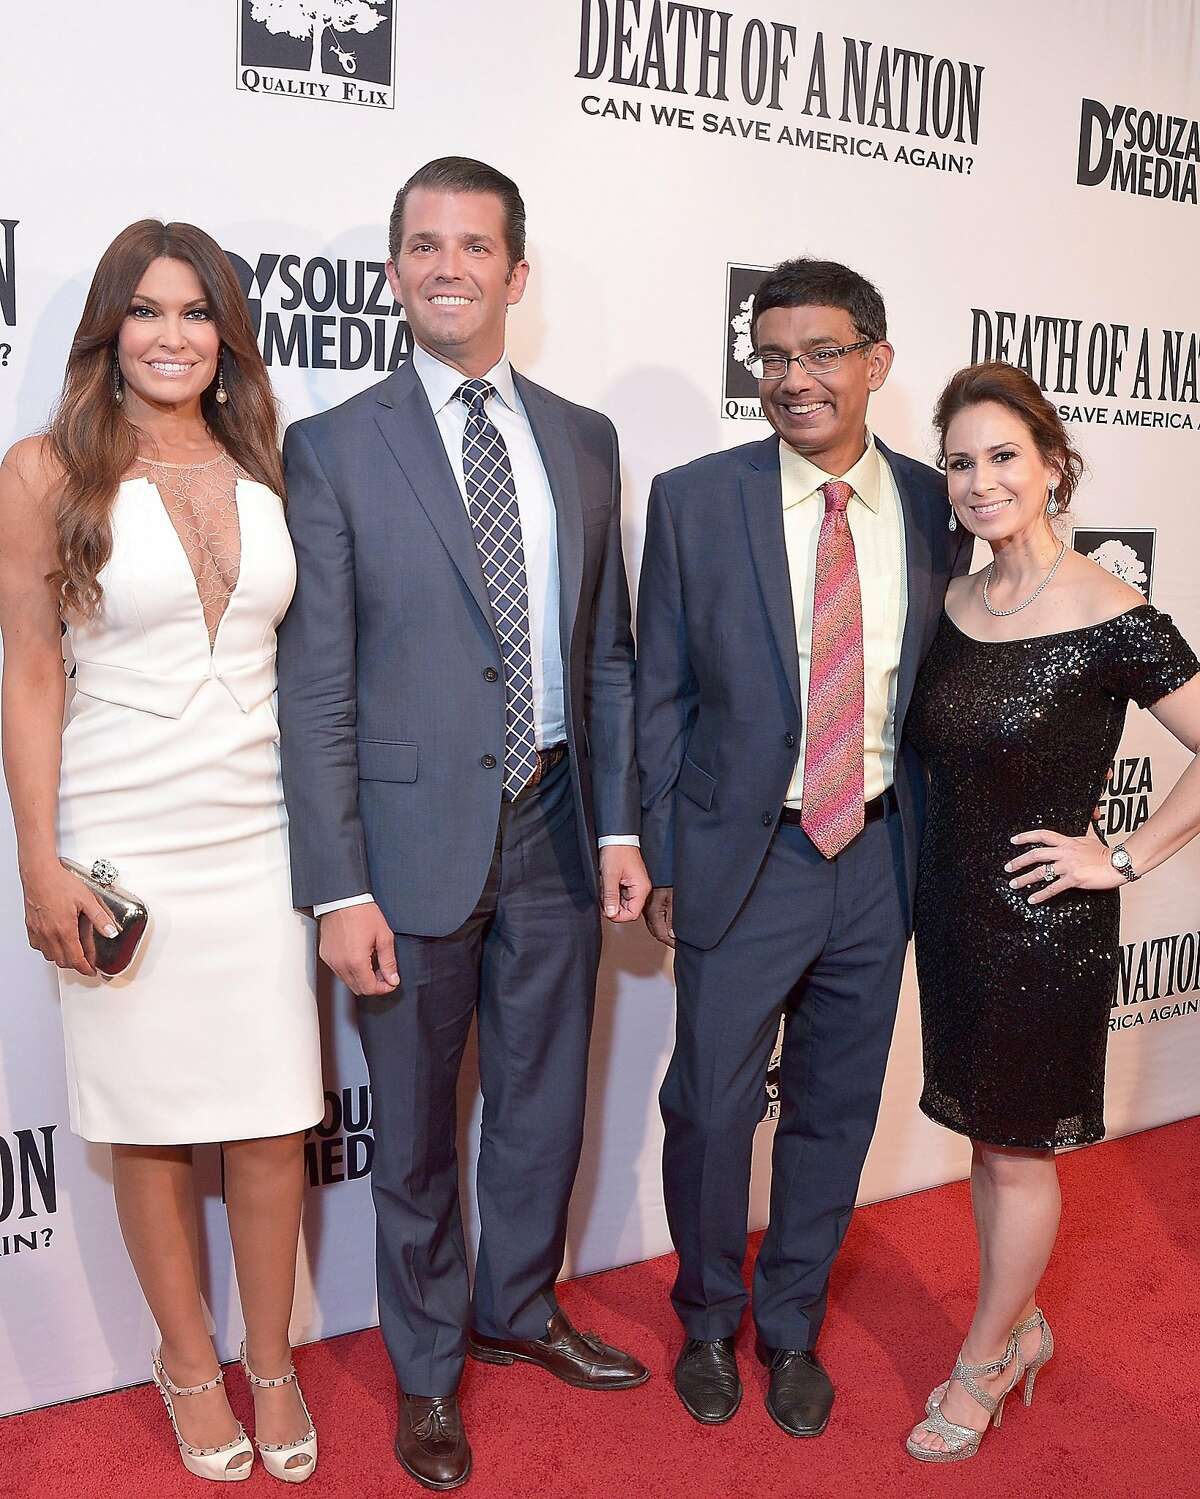 """WASHINGTON, DC - AUGUST 01: Kimberly Guilfoyle, Donald Trump Jr., Dinesh D'Souza, and Debbie Fancher attend the DC premiere of the film, """"Death of a Nation,"""" at E Street Cinema on August 1, 2018 in Washington, DC. (Photo by Shannon Finney/Getty Images)"""